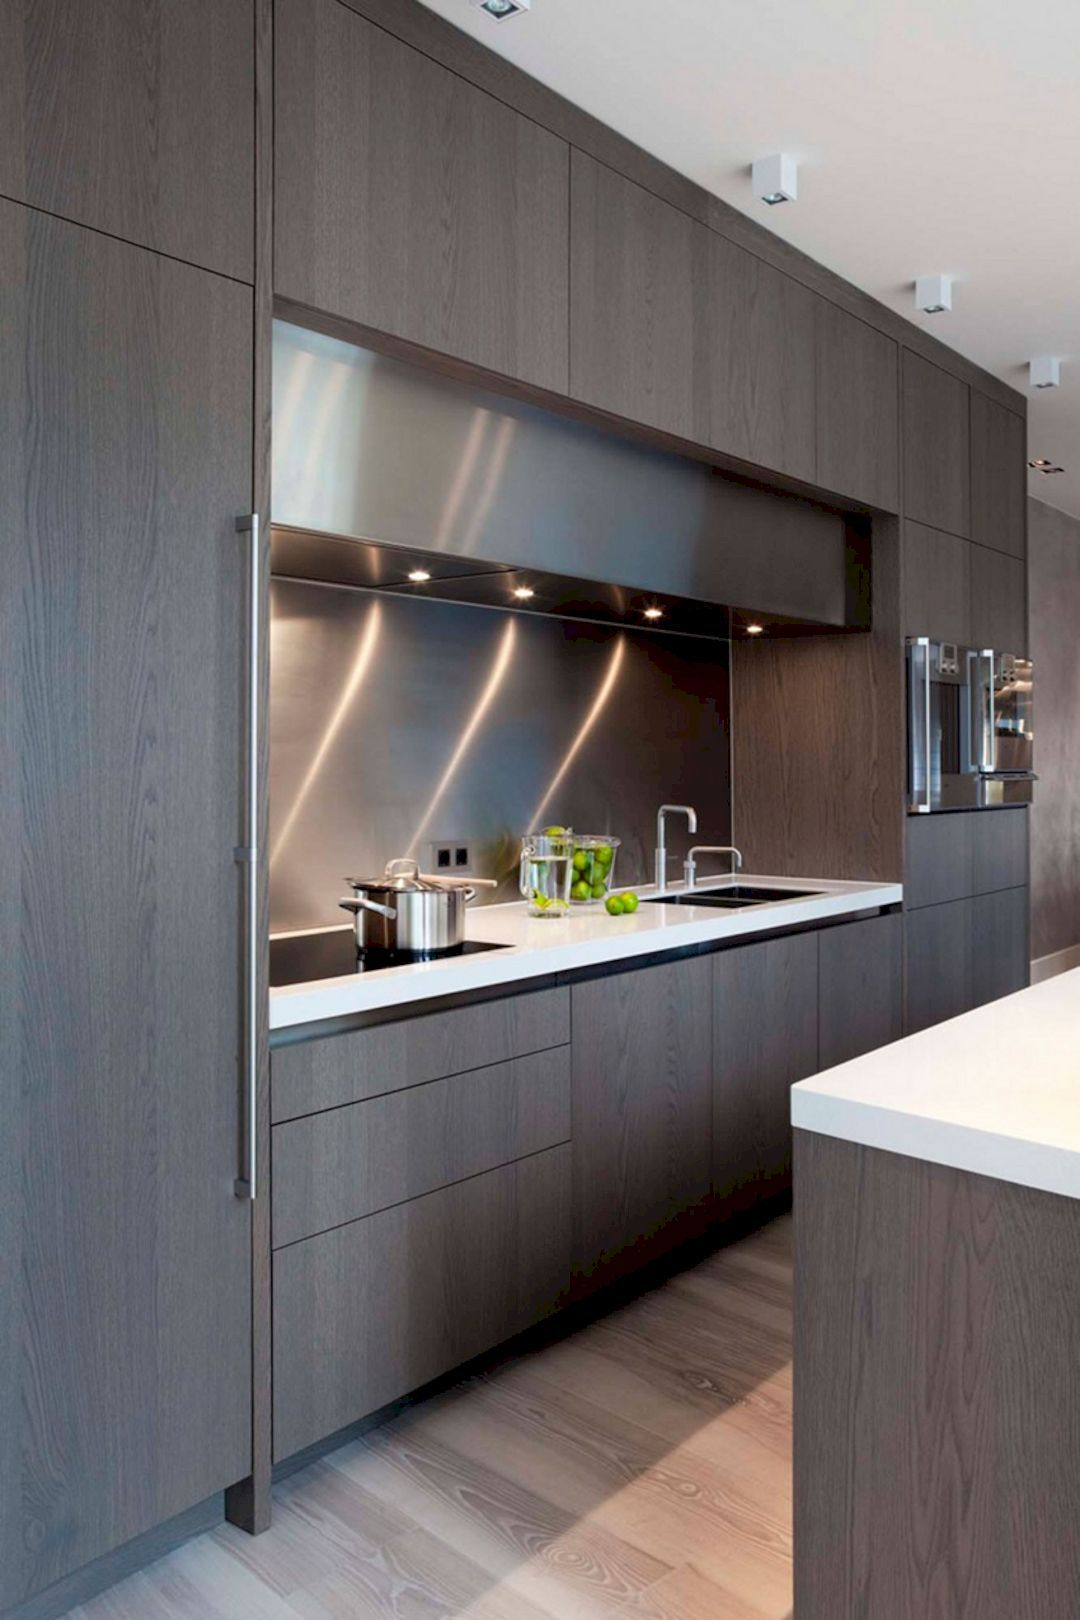 Stylish Modern Kitchen Cabinet 127 Design Ideas Modern Kitchen Cabinets Stylish And Kitchens